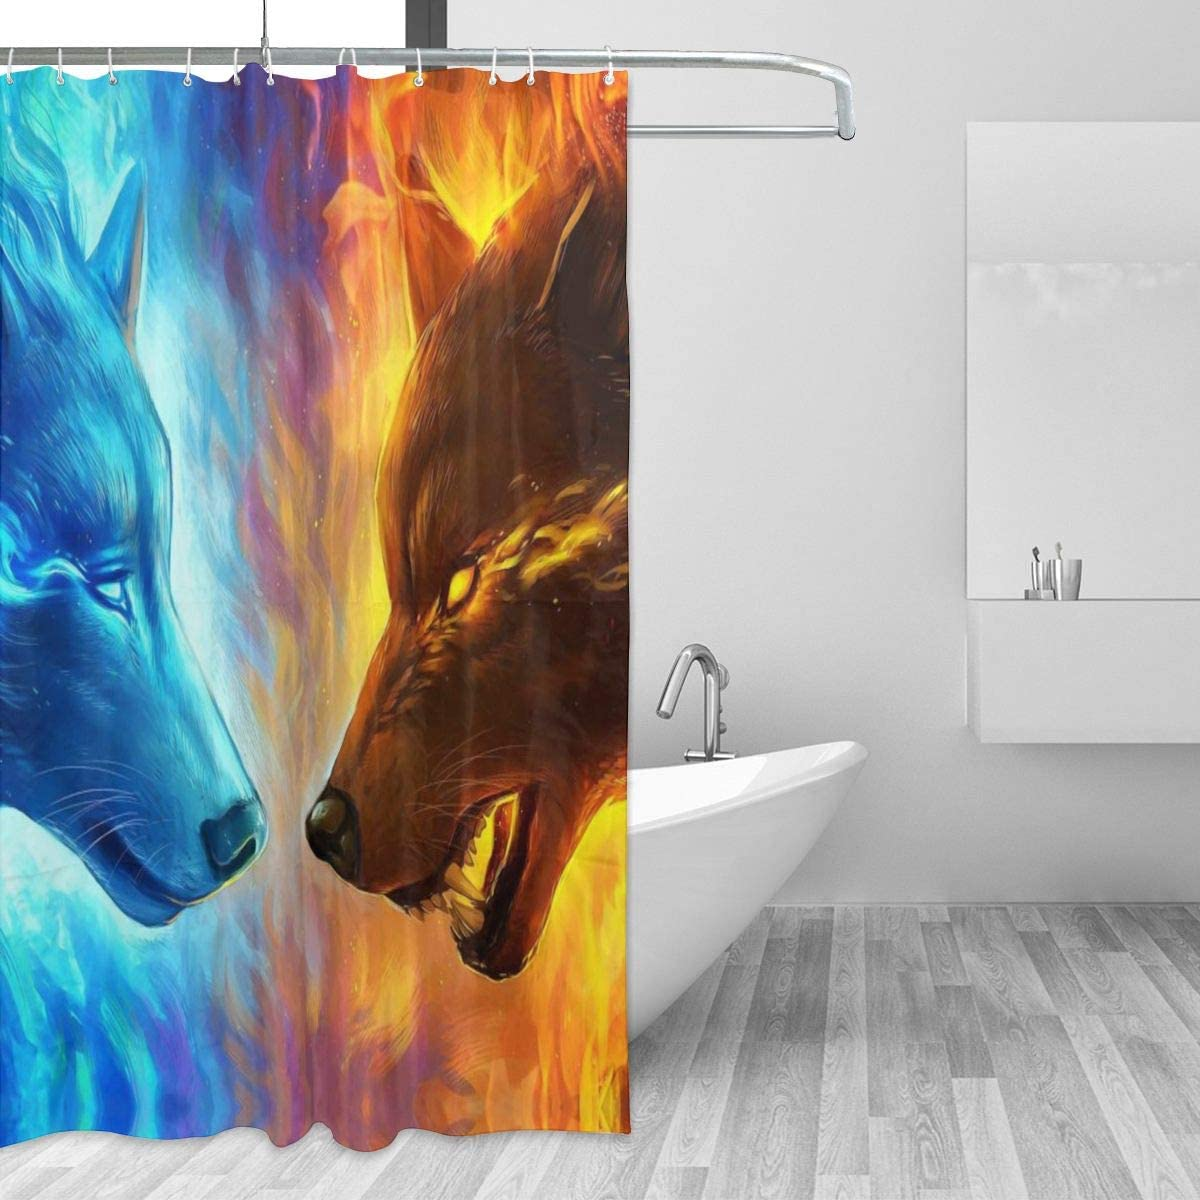 Ice and Fire Art Hockey Image Details about  /Winter Sports Decor Bathroom Shower Curtains